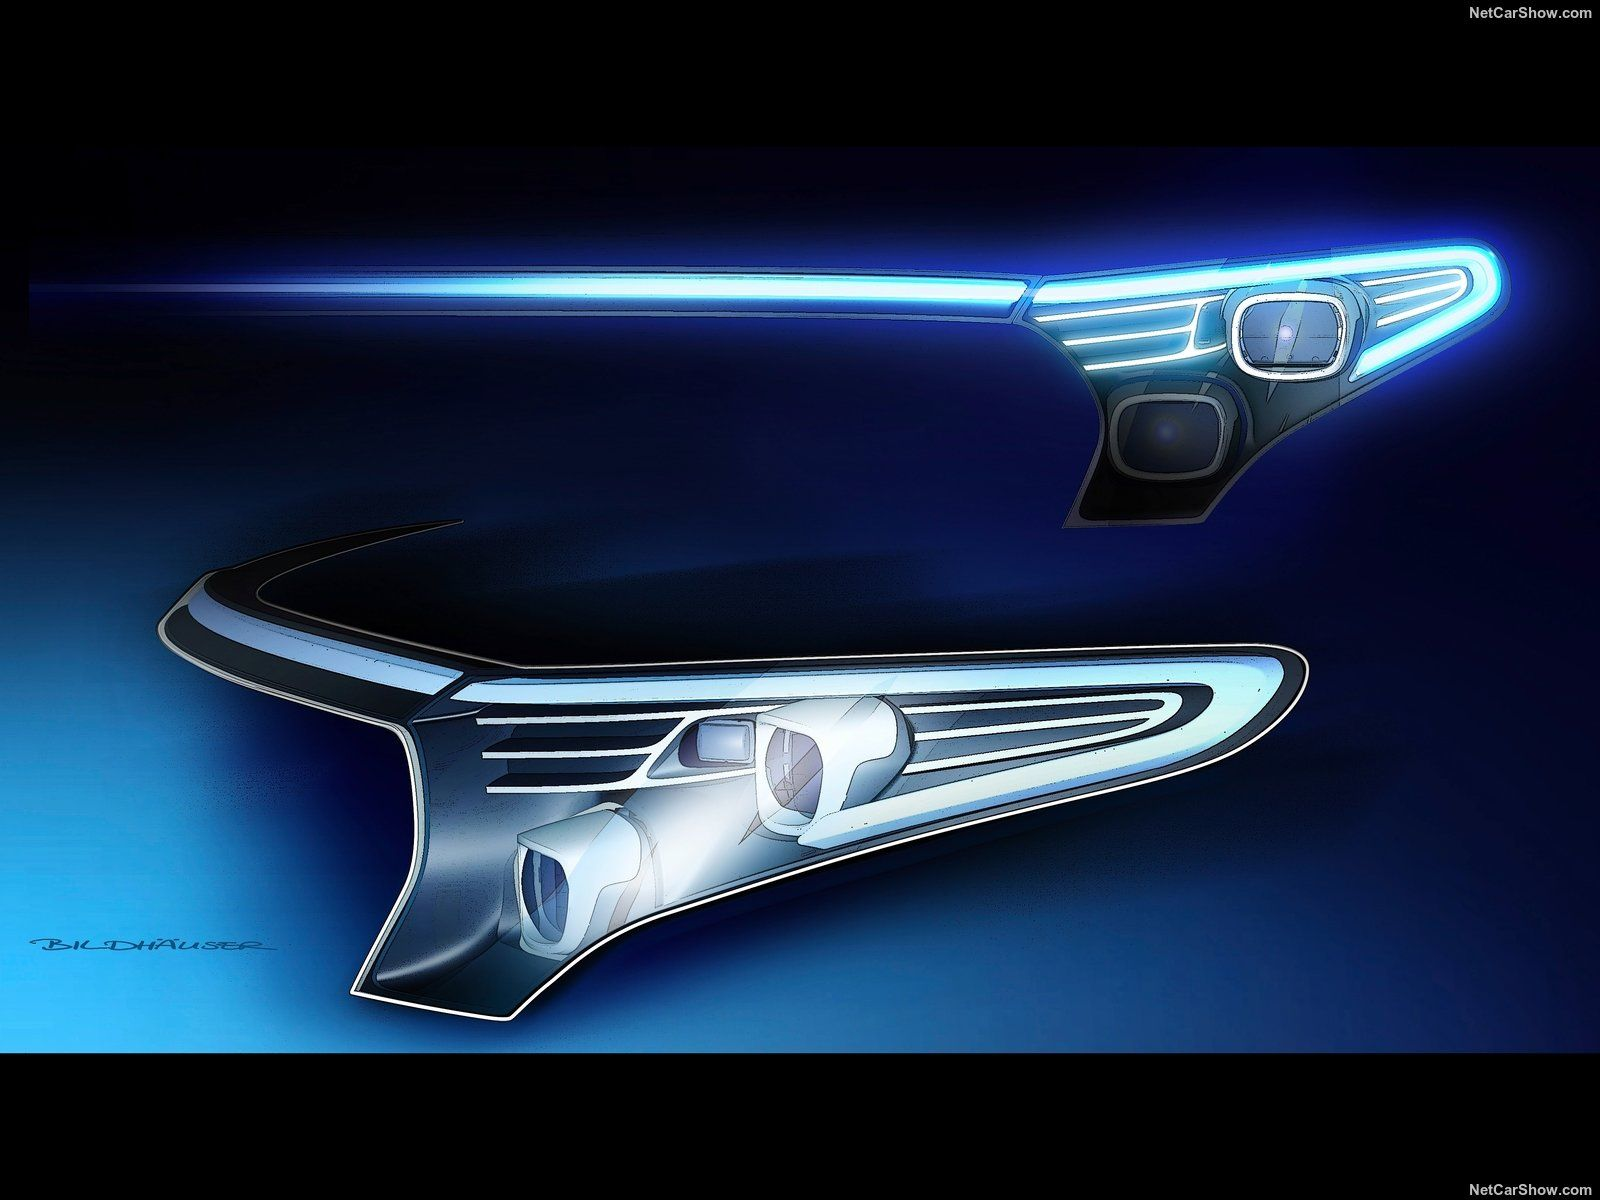 2020 Mercedes Benz Eqc Headlight Design Detail Car Lamp Design